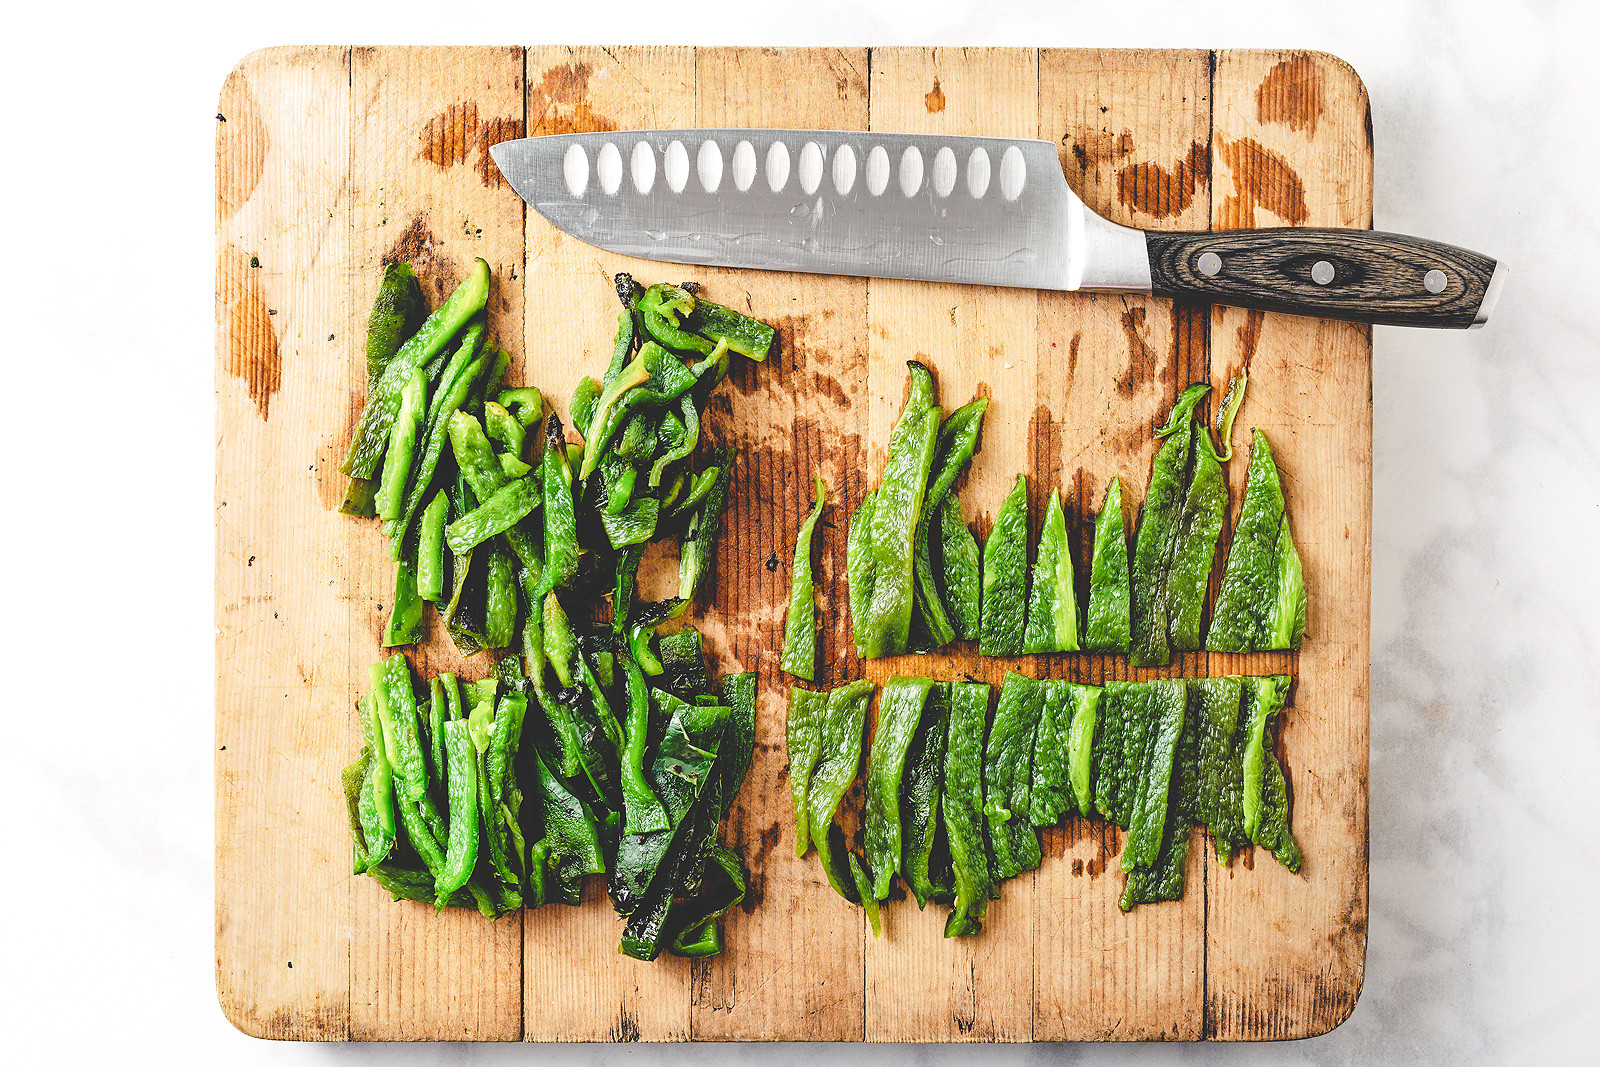 Roasted poblano peppers cut into strips.